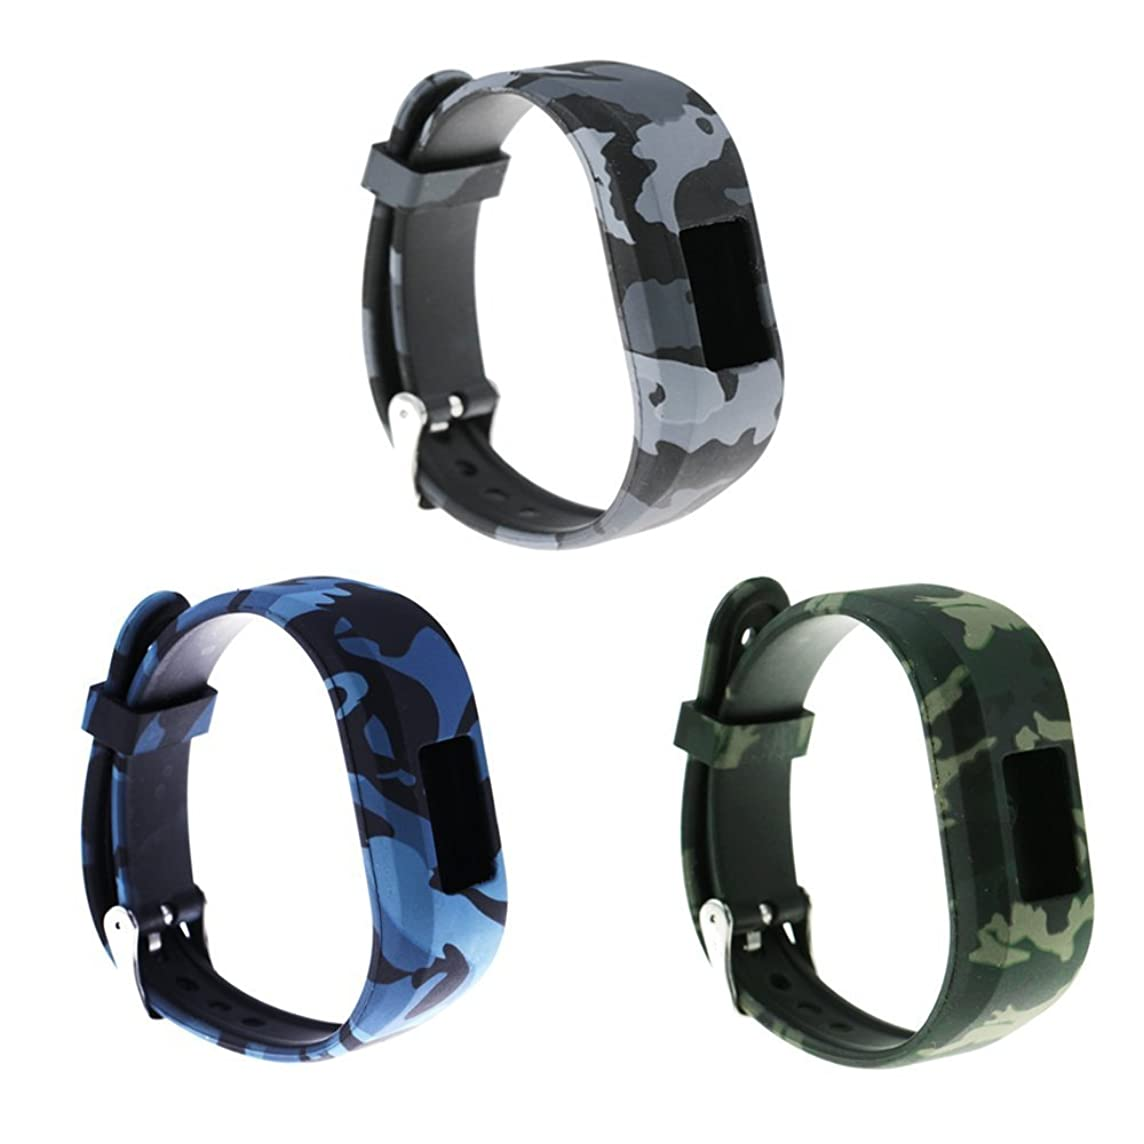 for Garmin Vivofit jr/Vivofit jr 2 Replacement Band(Kid's Bands) RuenTech Colorful Adjustable Wristbands with Secure Watch-Style Clasp Strap for Garmin Vivofit jr/Vivofit jr.2 (Soldier Pattern)